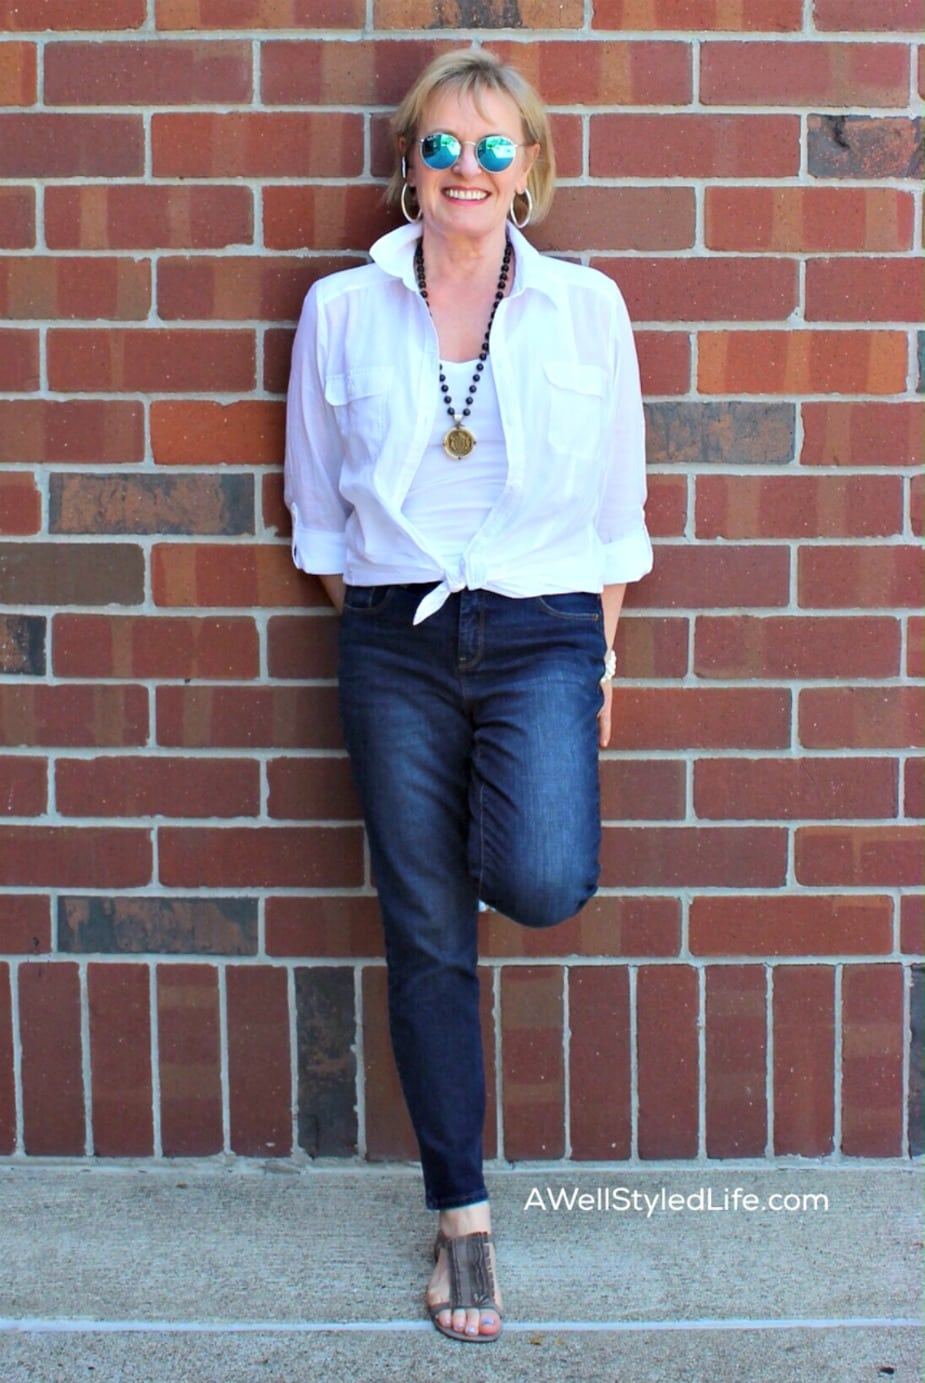 White shirt tied at waist and skinny jeans on Jennifer Connolly of A Well Styled Life